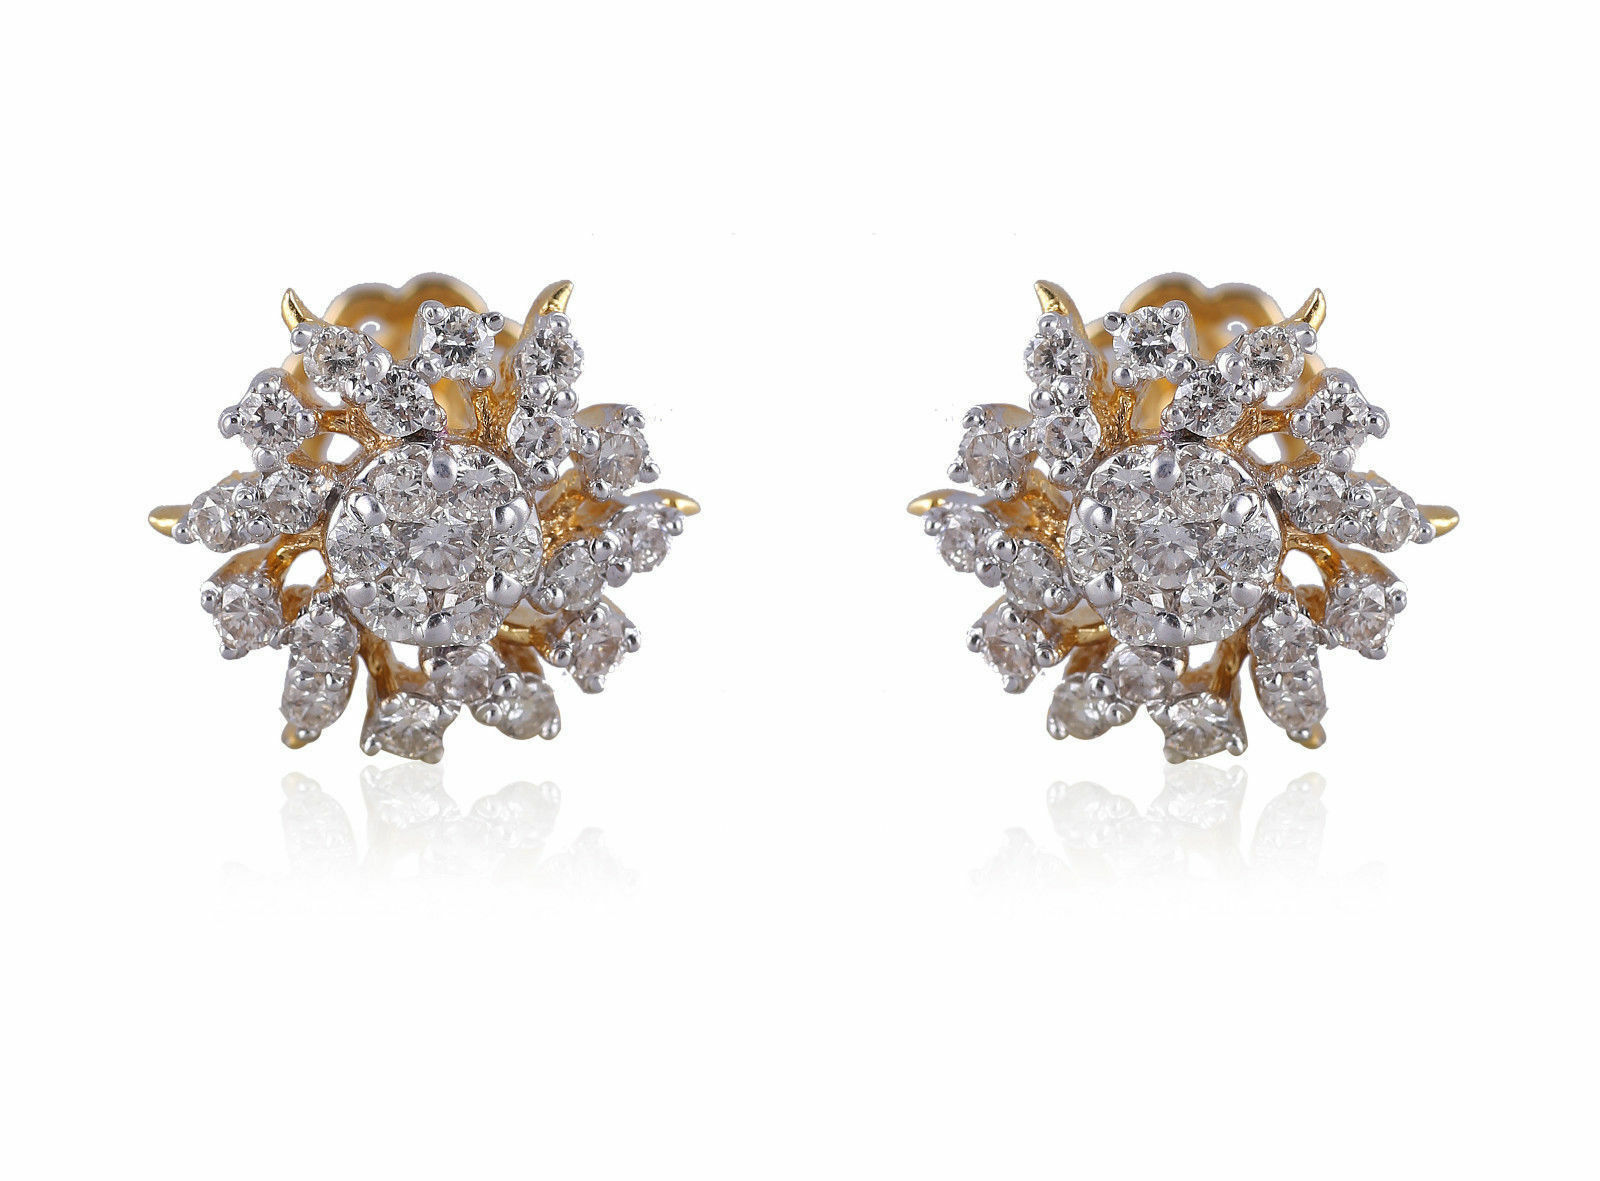 1.26 Cts Round Brilliant Cut Pave Diamonds Stud Earrings In Solid 14Karat gold